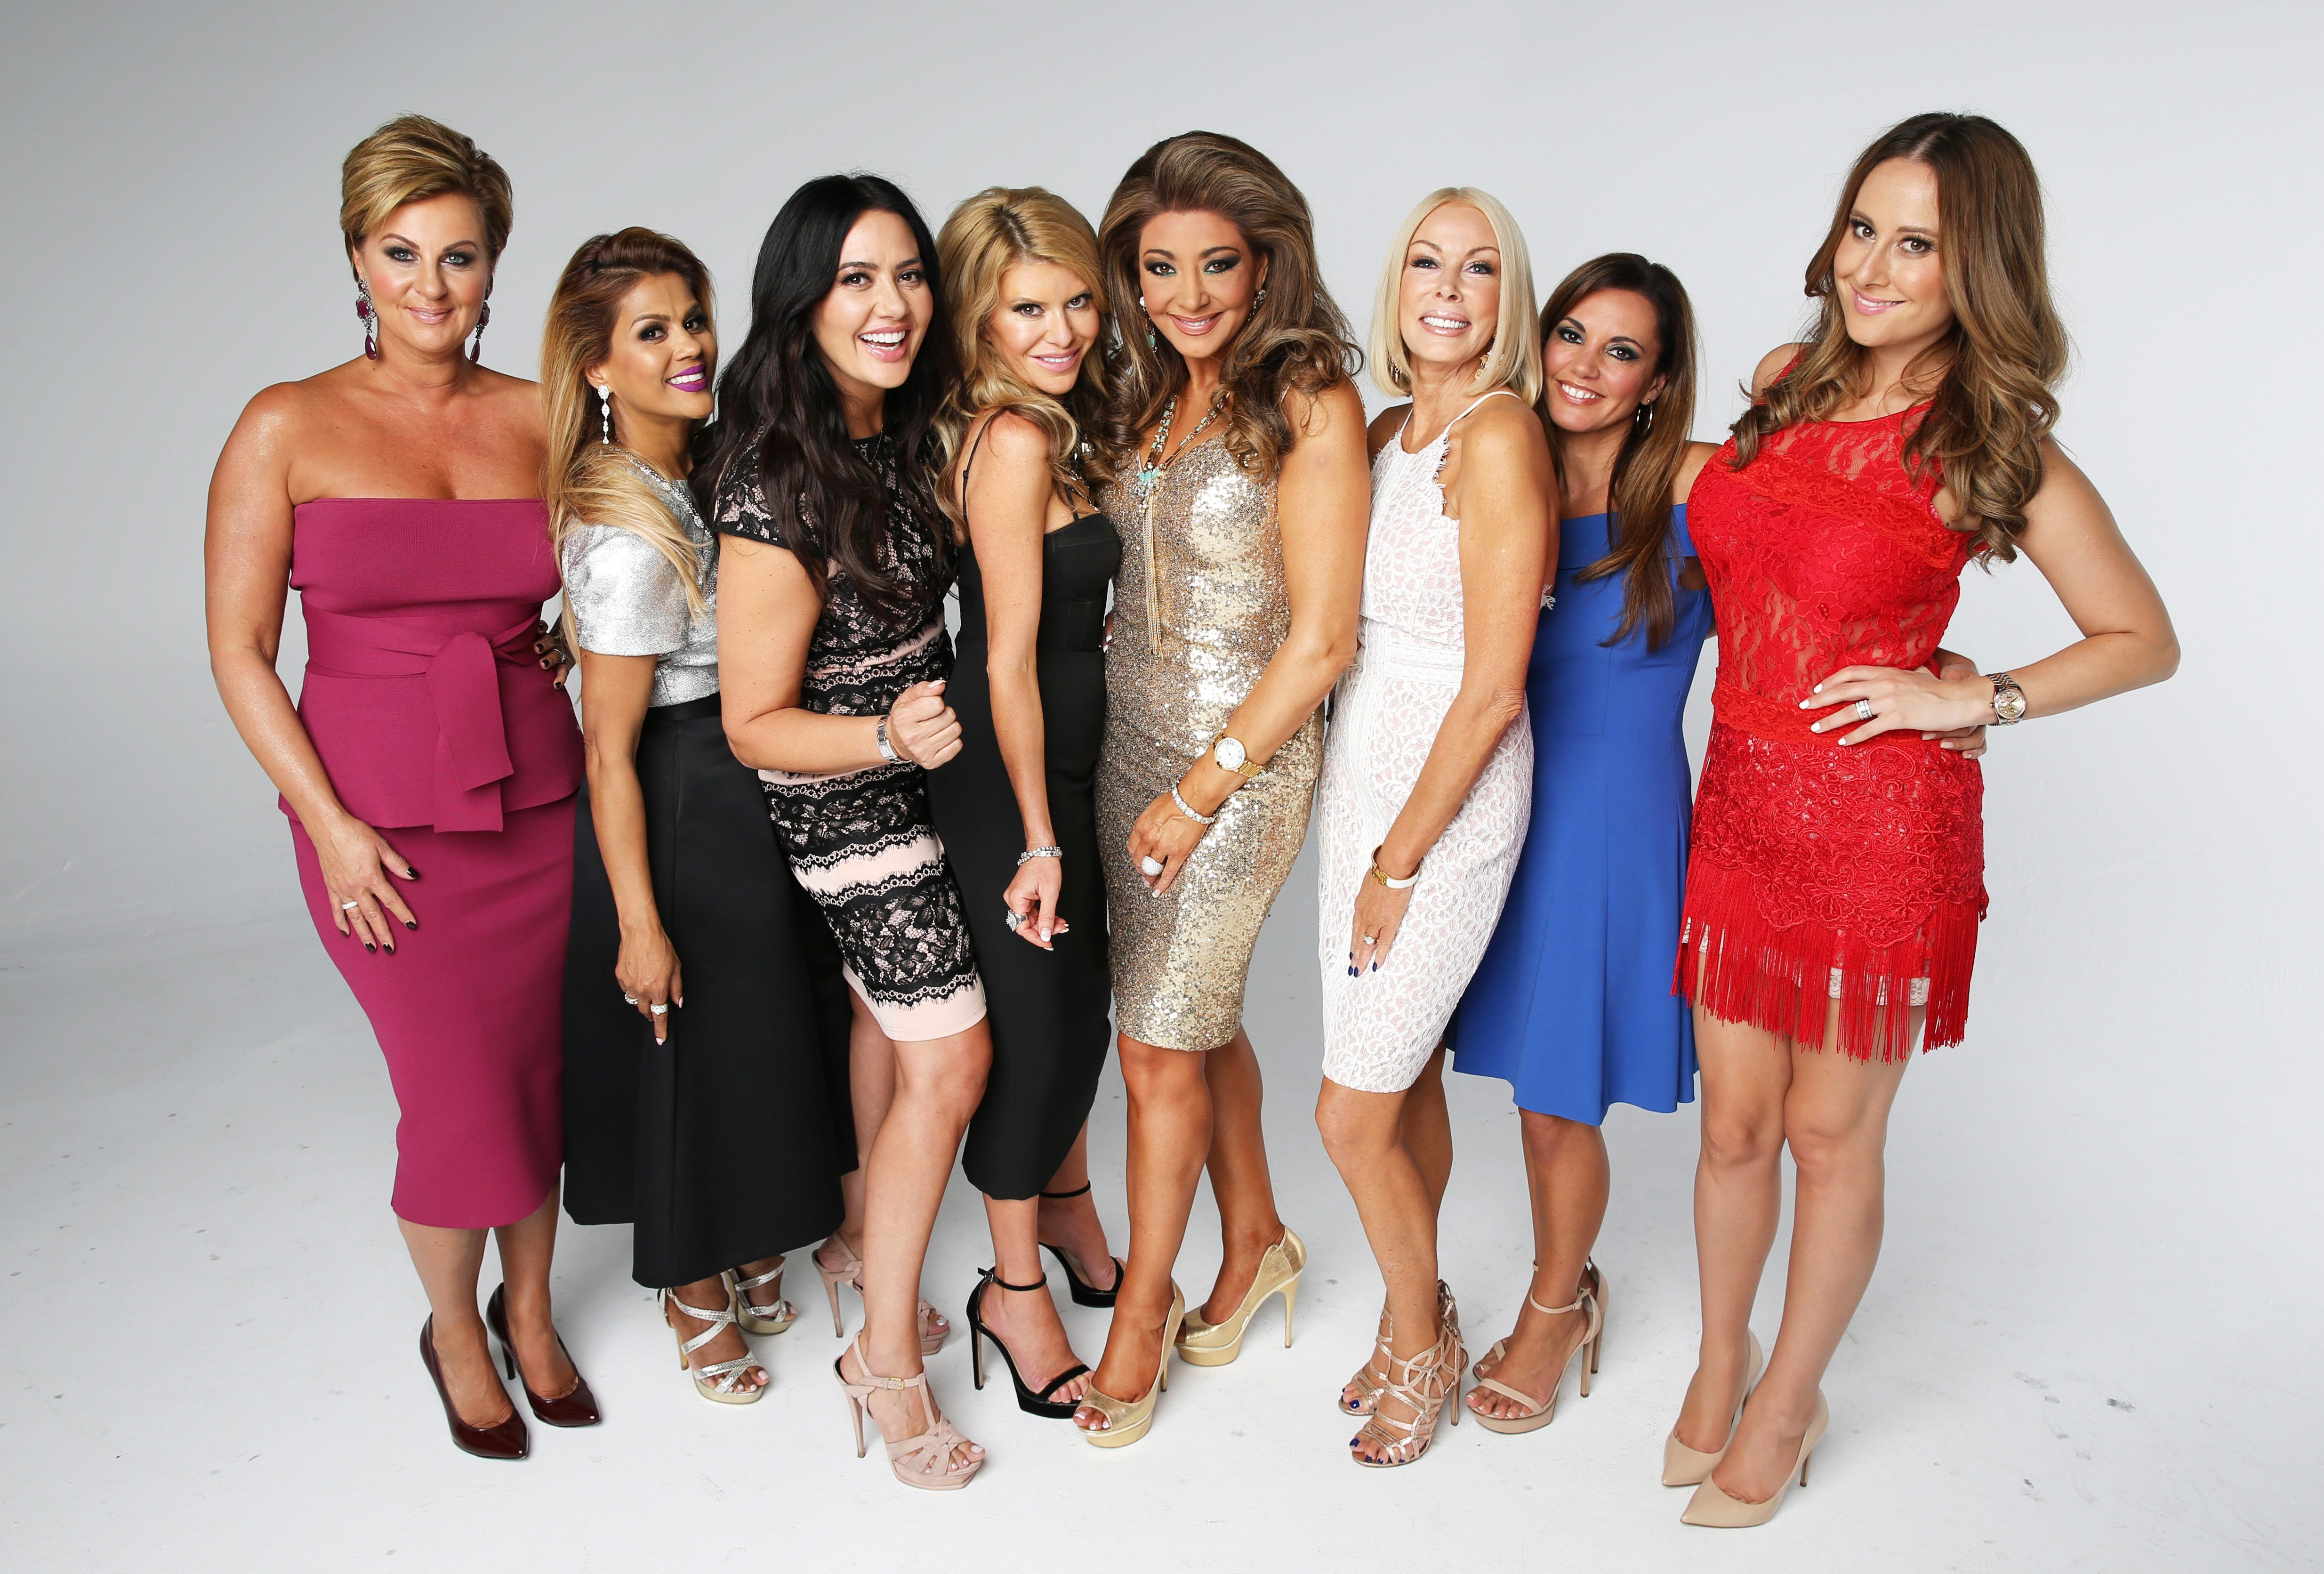 Cast Of Real Housewives of Melbourne: How Much Are They Worth? - Fame10